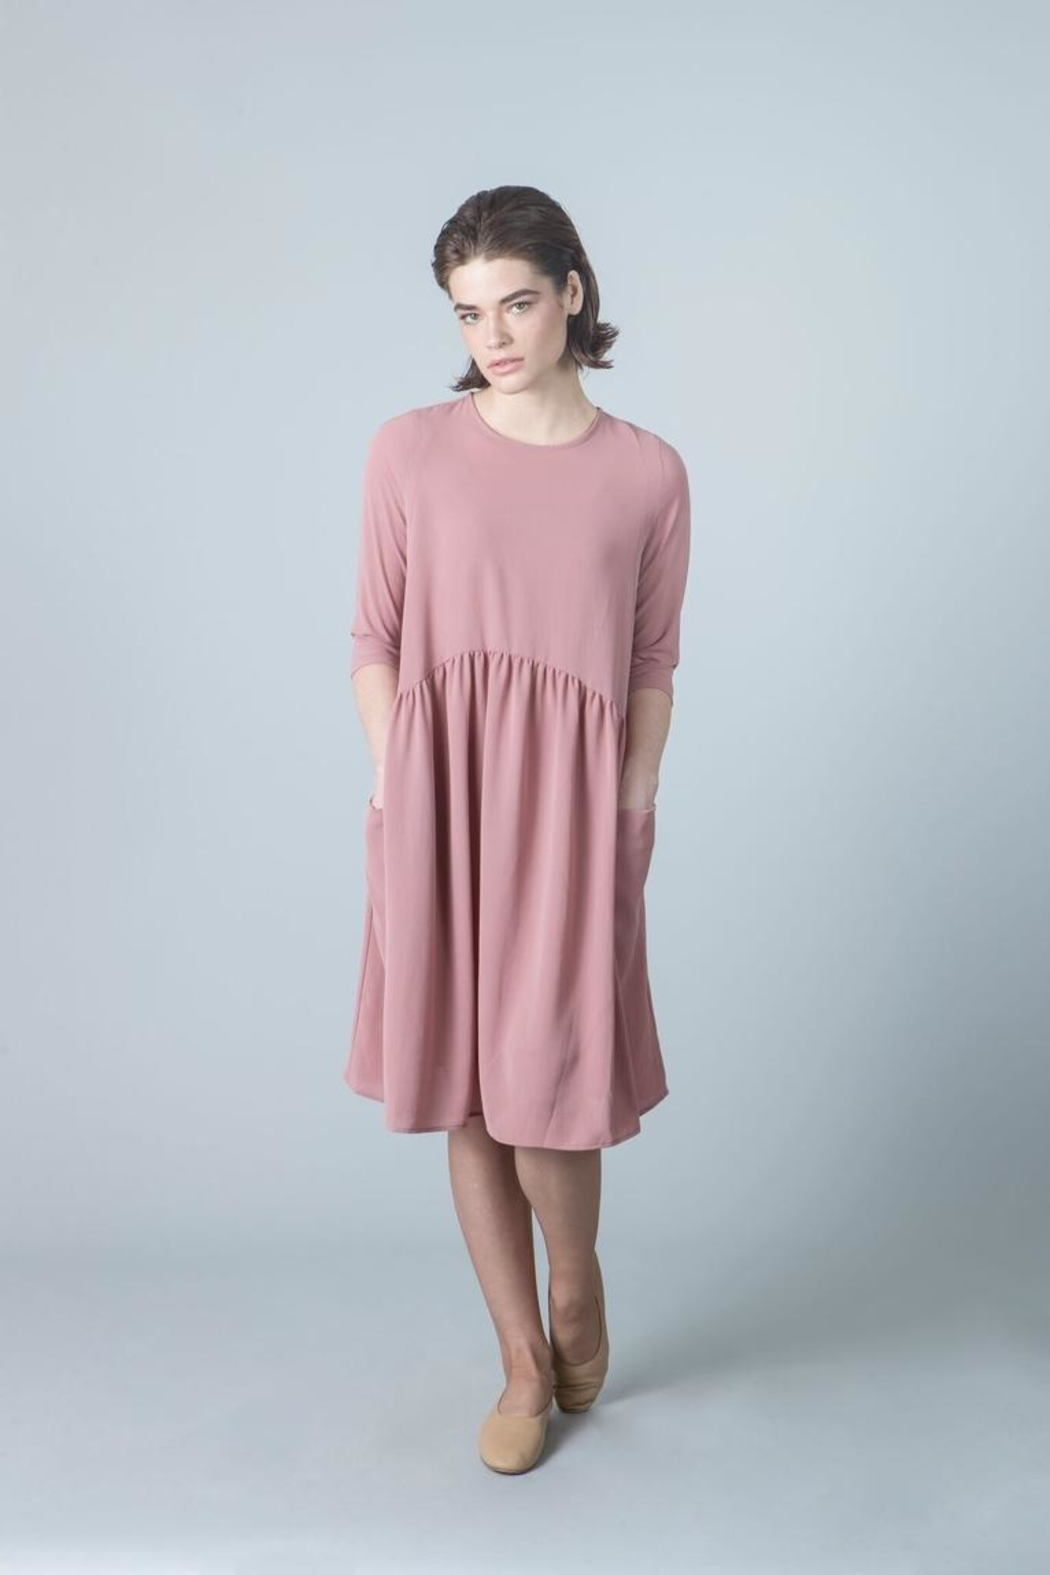 Solika Heidi Dress from New York City by Fashion Queen — Shoptiques